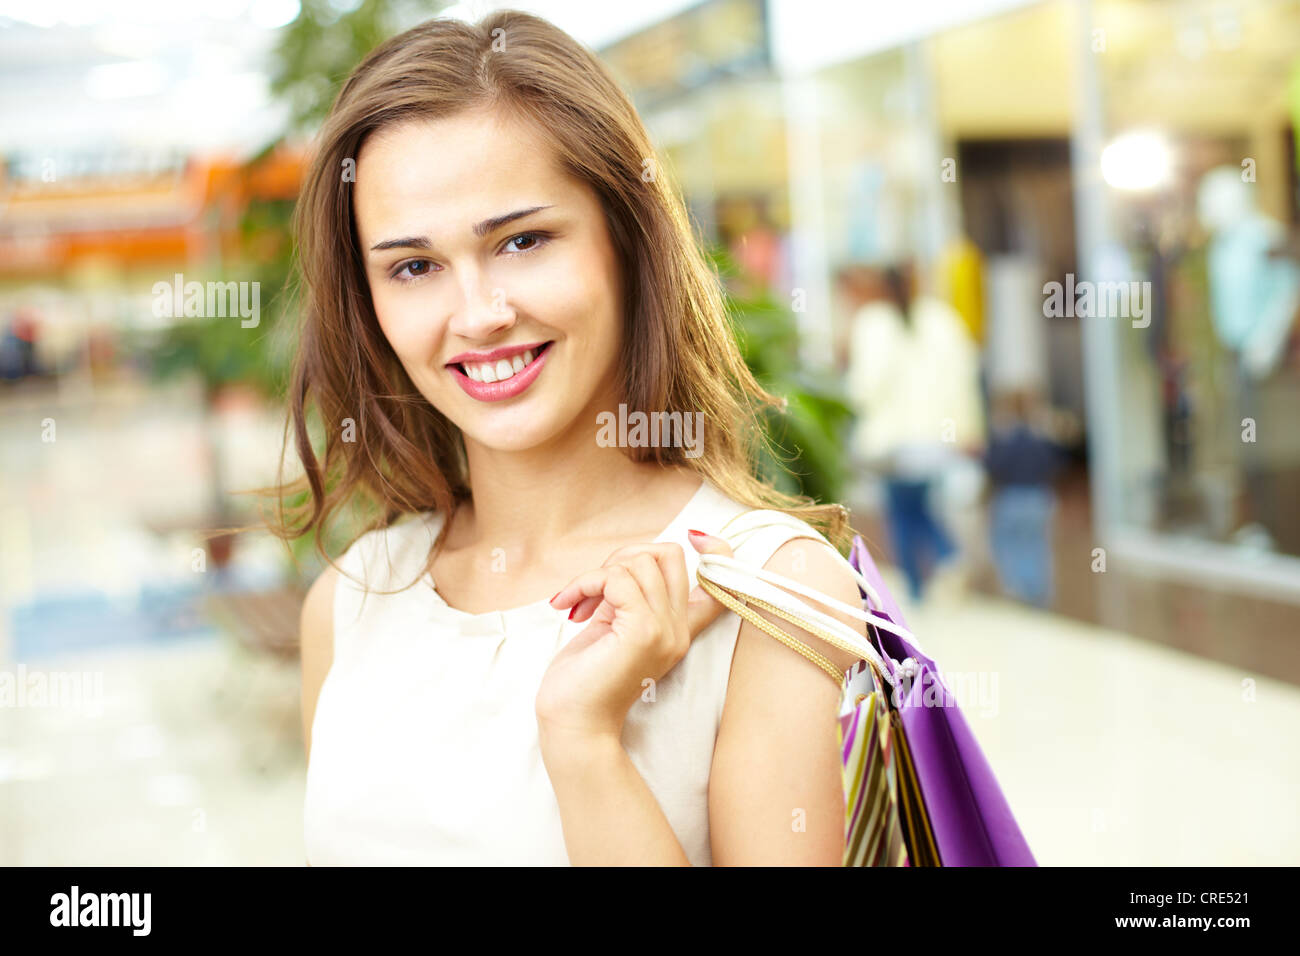 Portrait of a cheerful girl holding a bunch of shopping bags - Stock Image